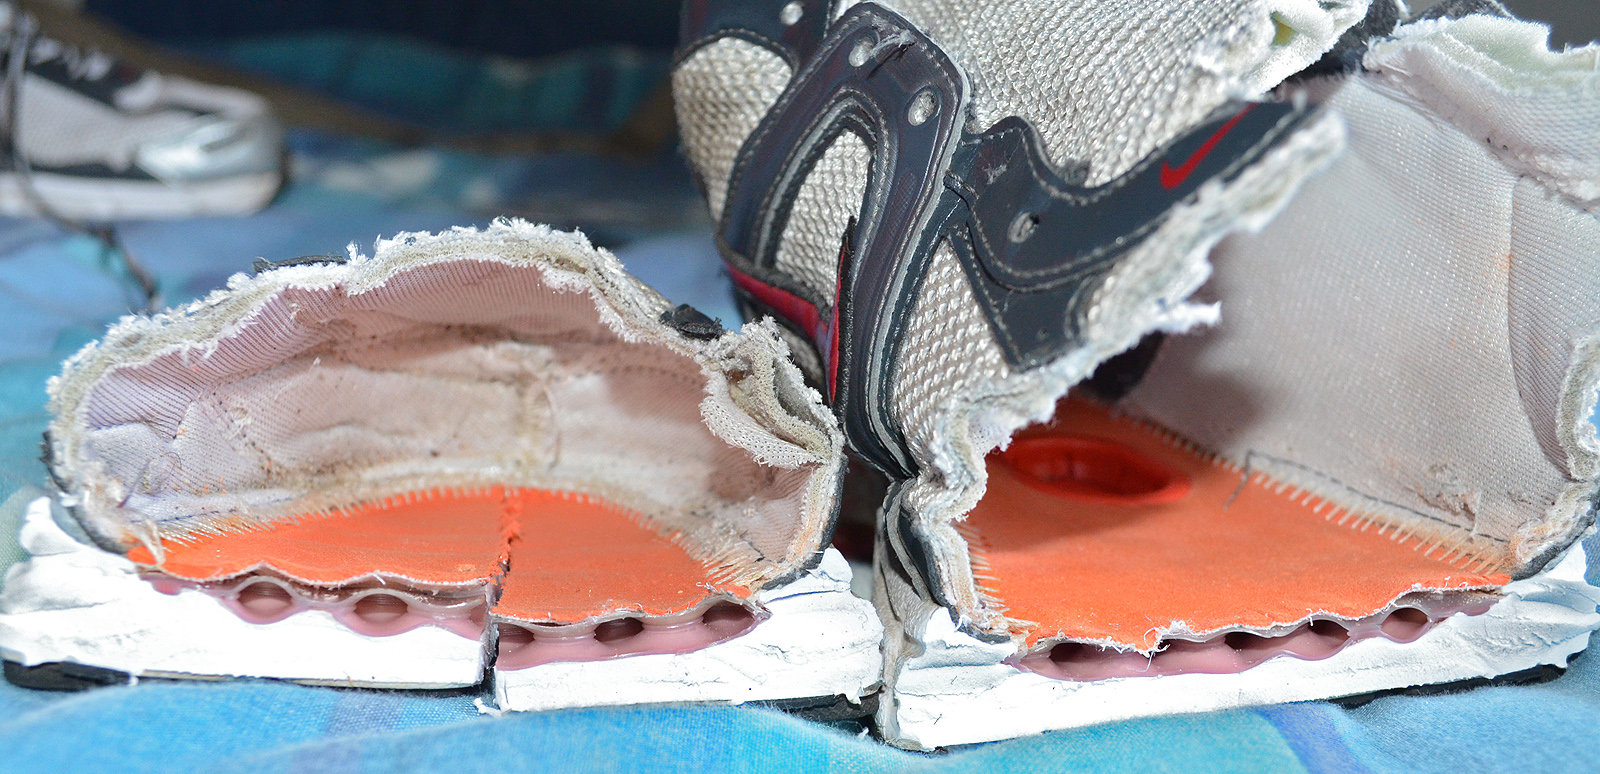 What You Need to Know About Buying Running Shoes | Breaking Muscle,YCVIALX702,